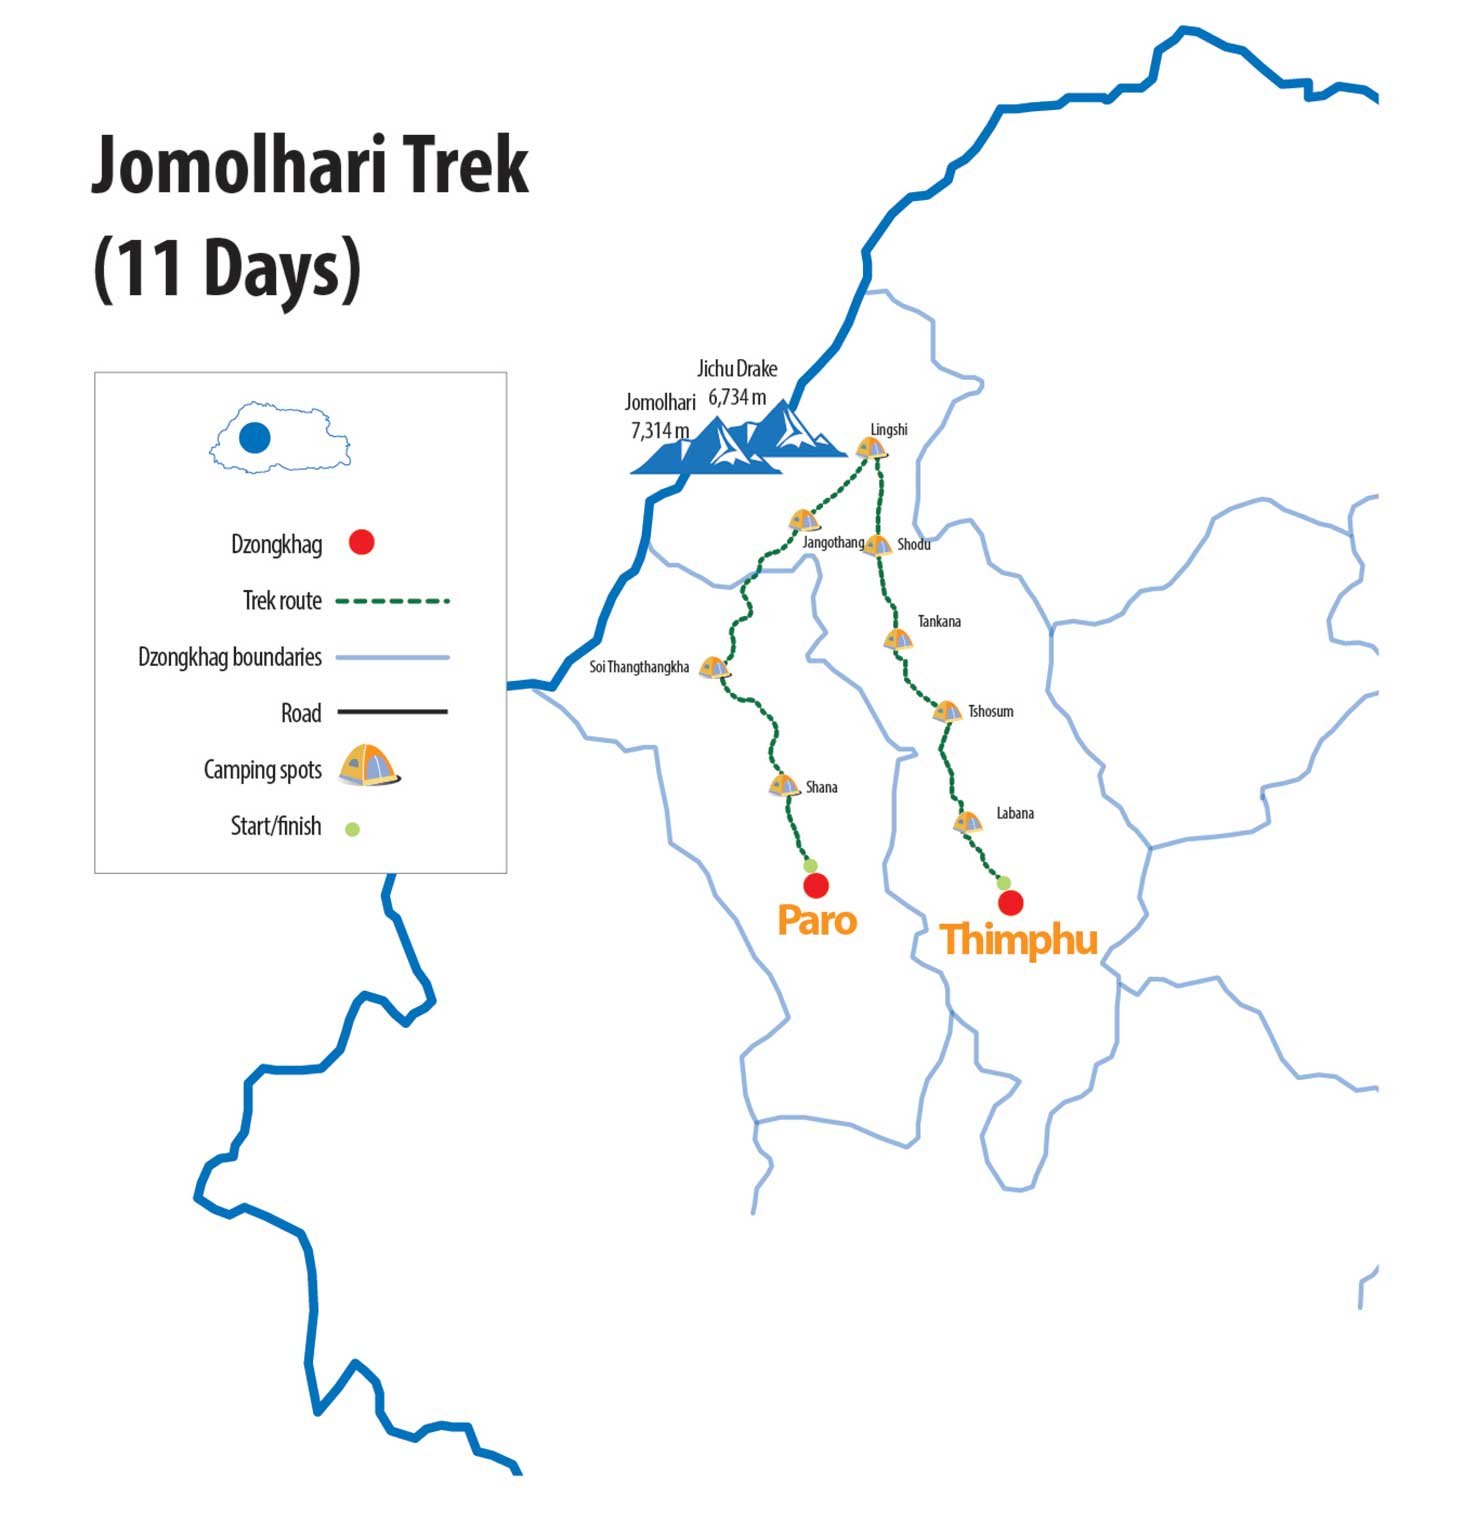 jomolhari trek route map